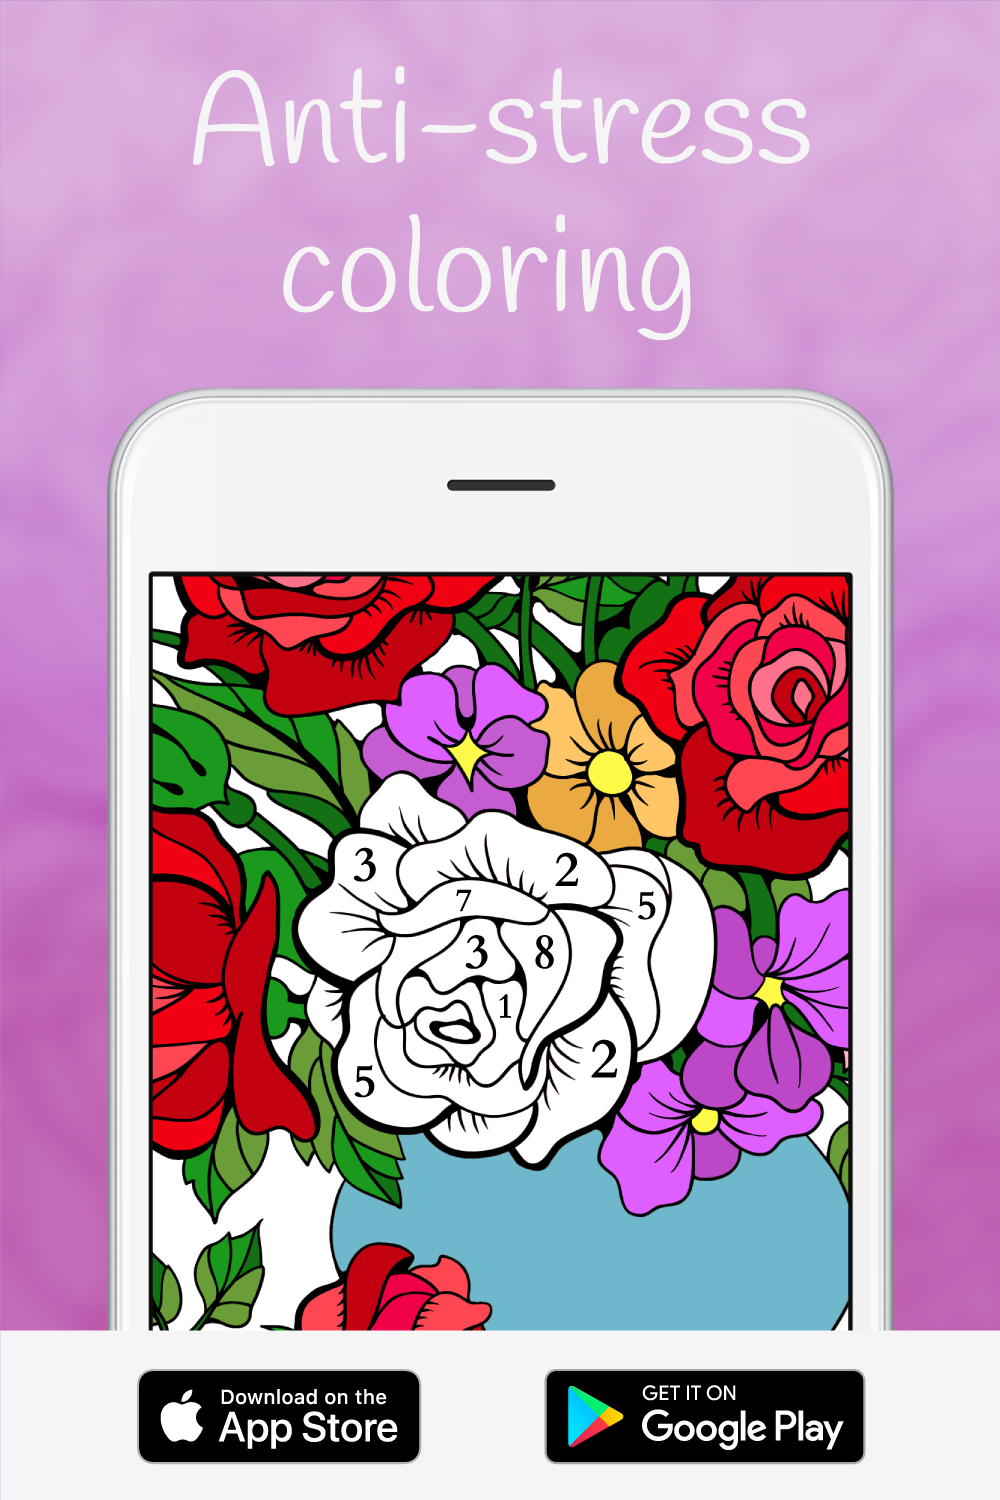 Happy Color Color By Number Antistress Coloring Easy Coloring Pages Coloring Apps